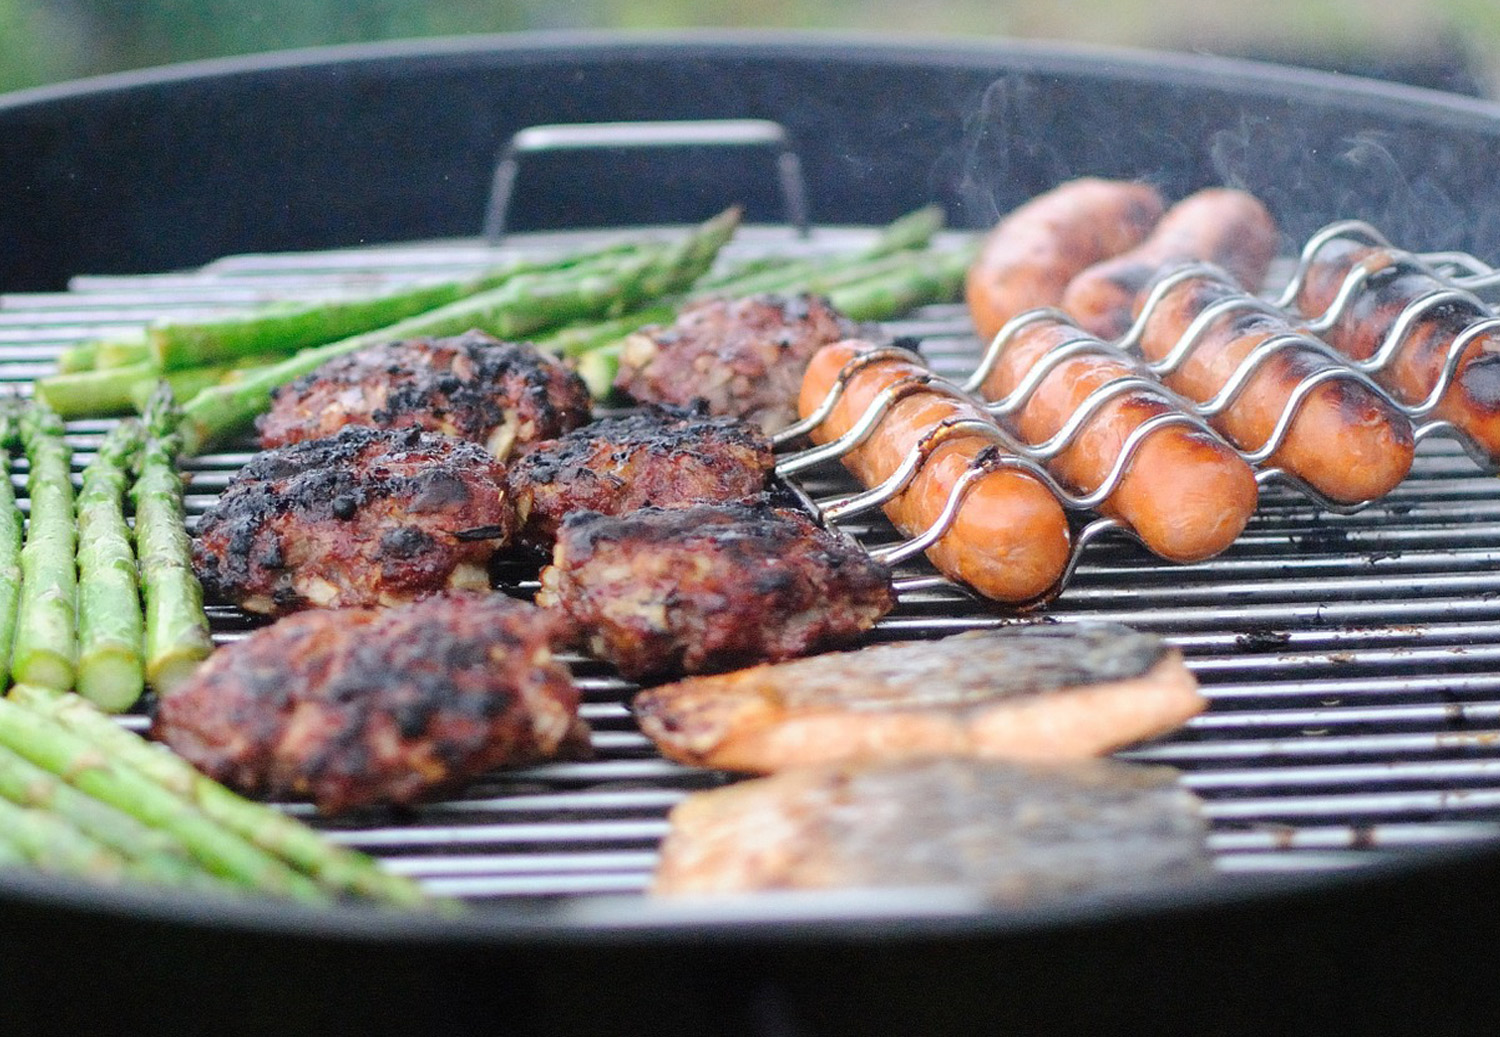 Backyard BBQ with charcoal grill loaded with hamburgers and hot dogs